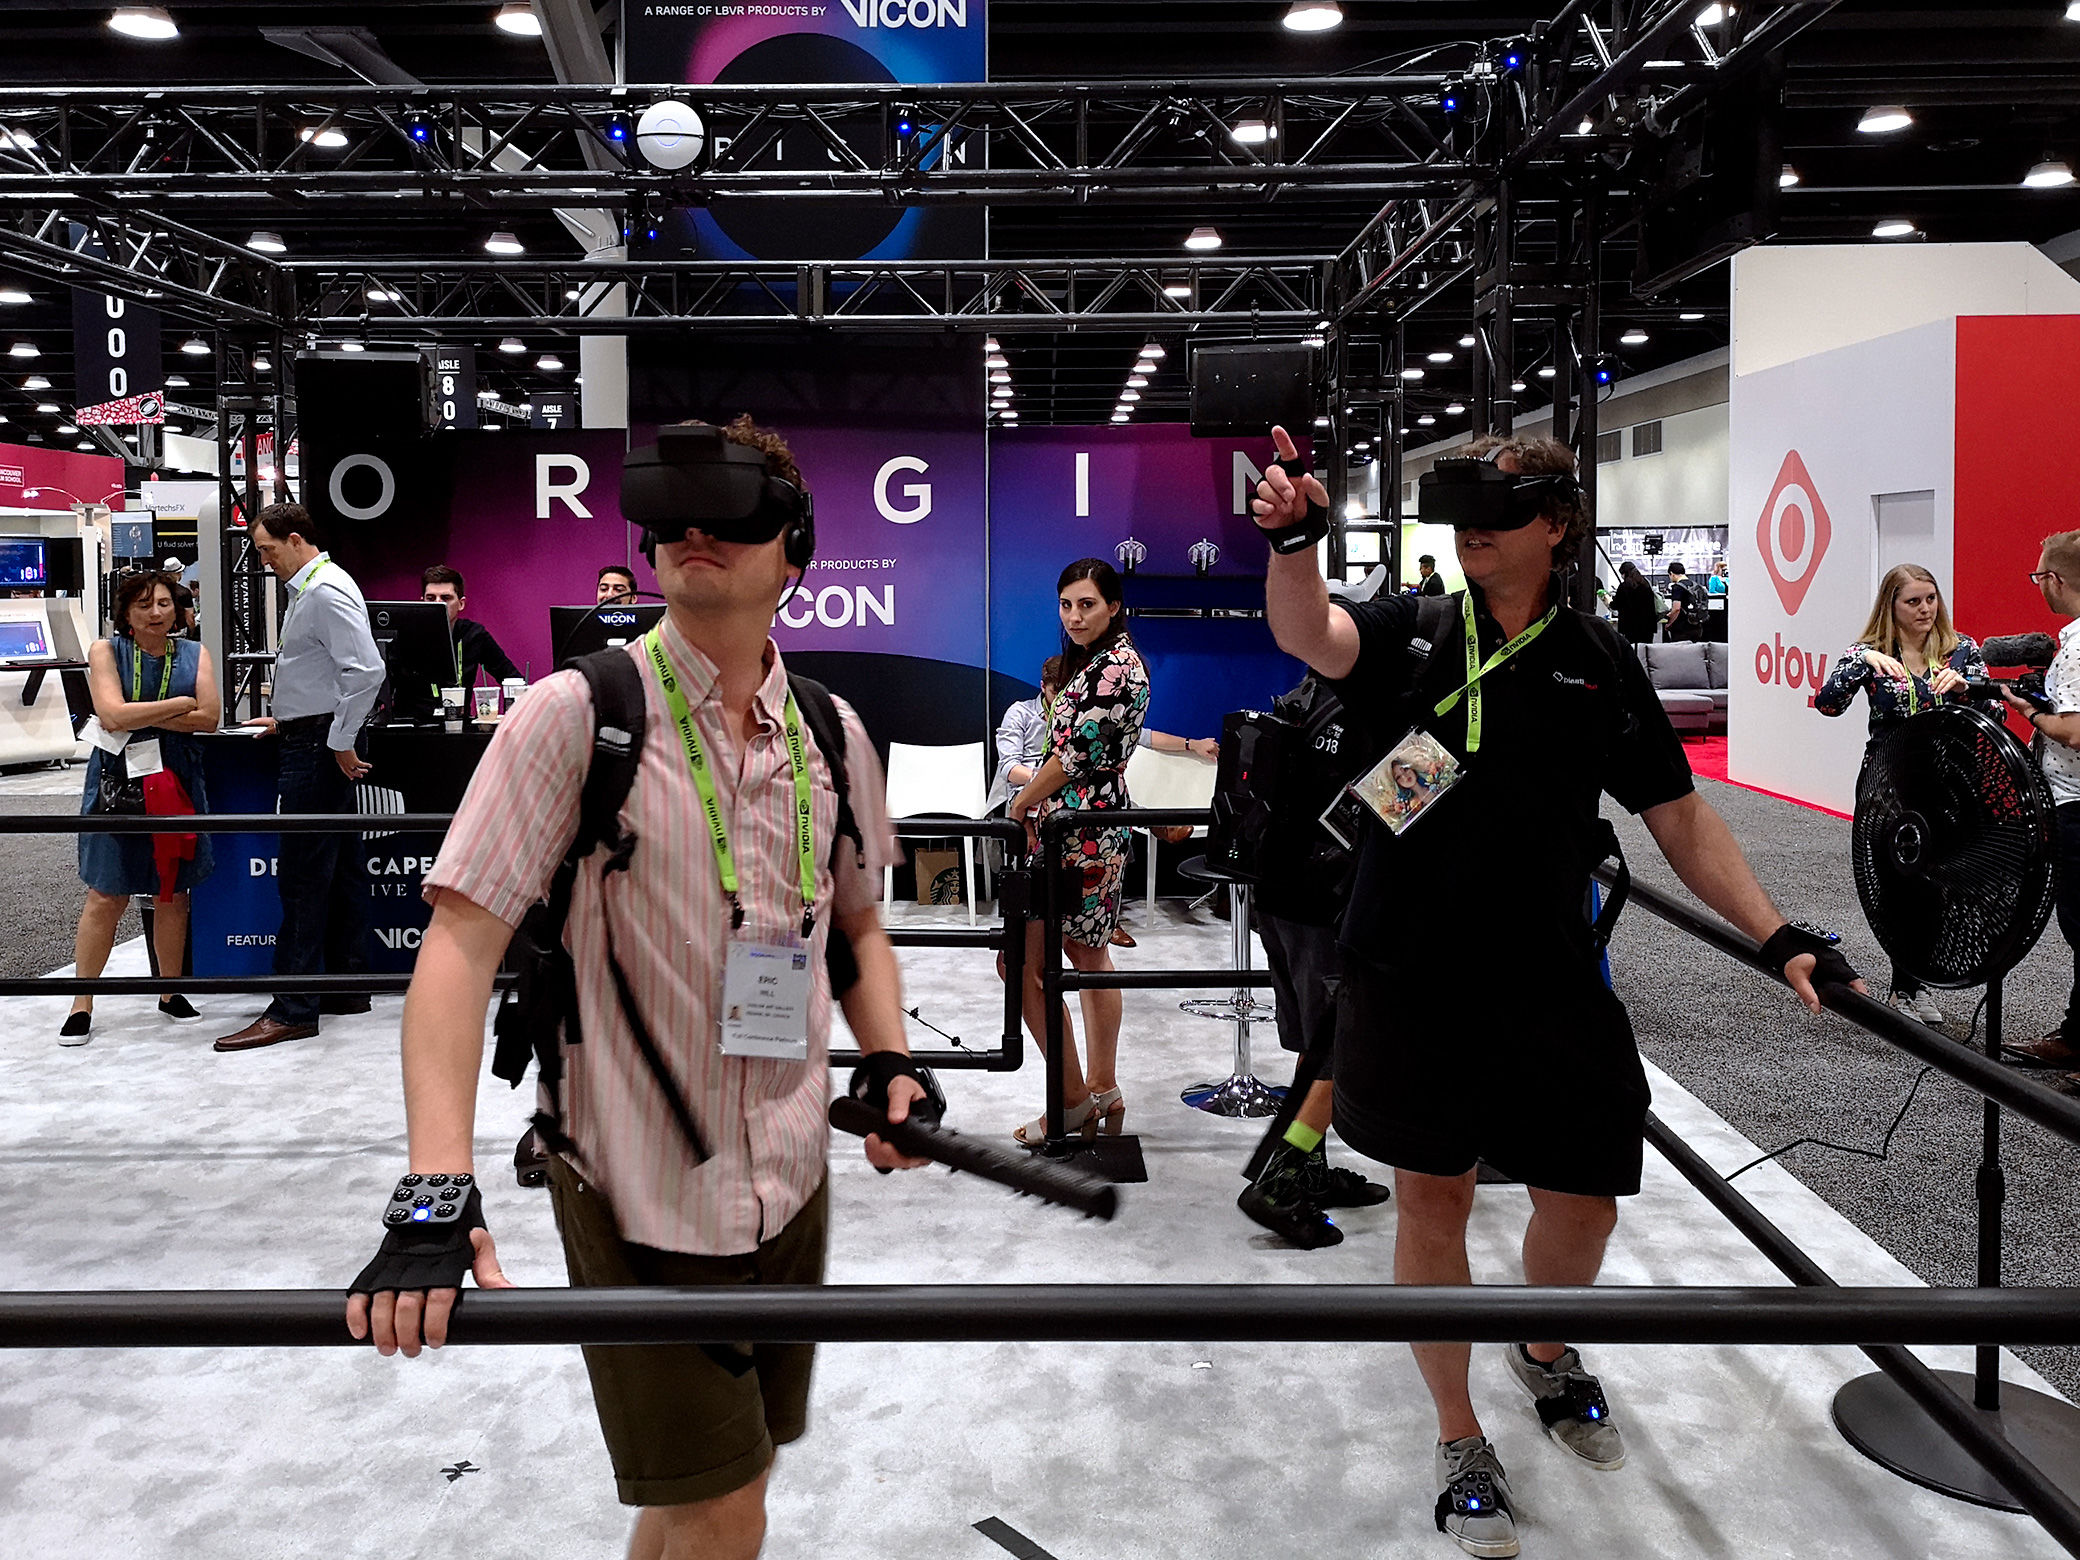 Three participants testing out experiences based on Vicon's multi-player VR system you can walk around in